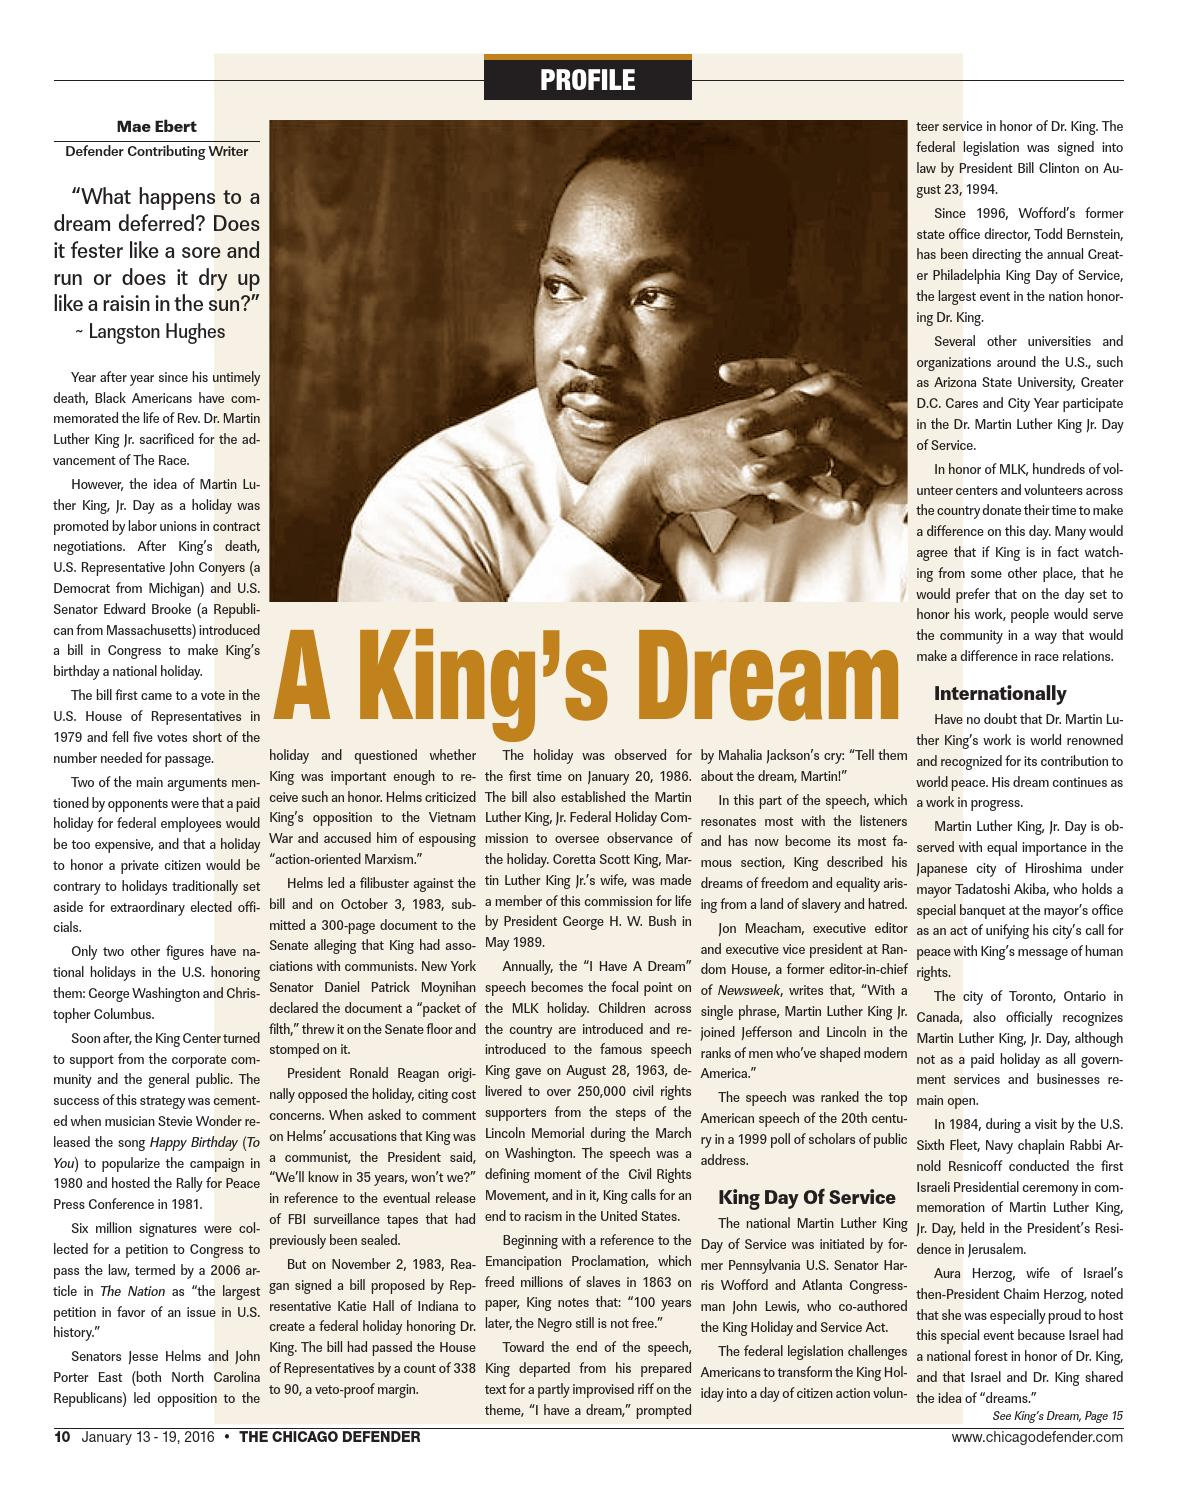 a raisin in the sun as compared to i have a dream by martin luther king jr Historical context of a raisin in the sun, current page hansberry finishes a raisin in the sun philip rose raises funds to produce the play 1959 martin luther king, jr gives his i have a dream speech.